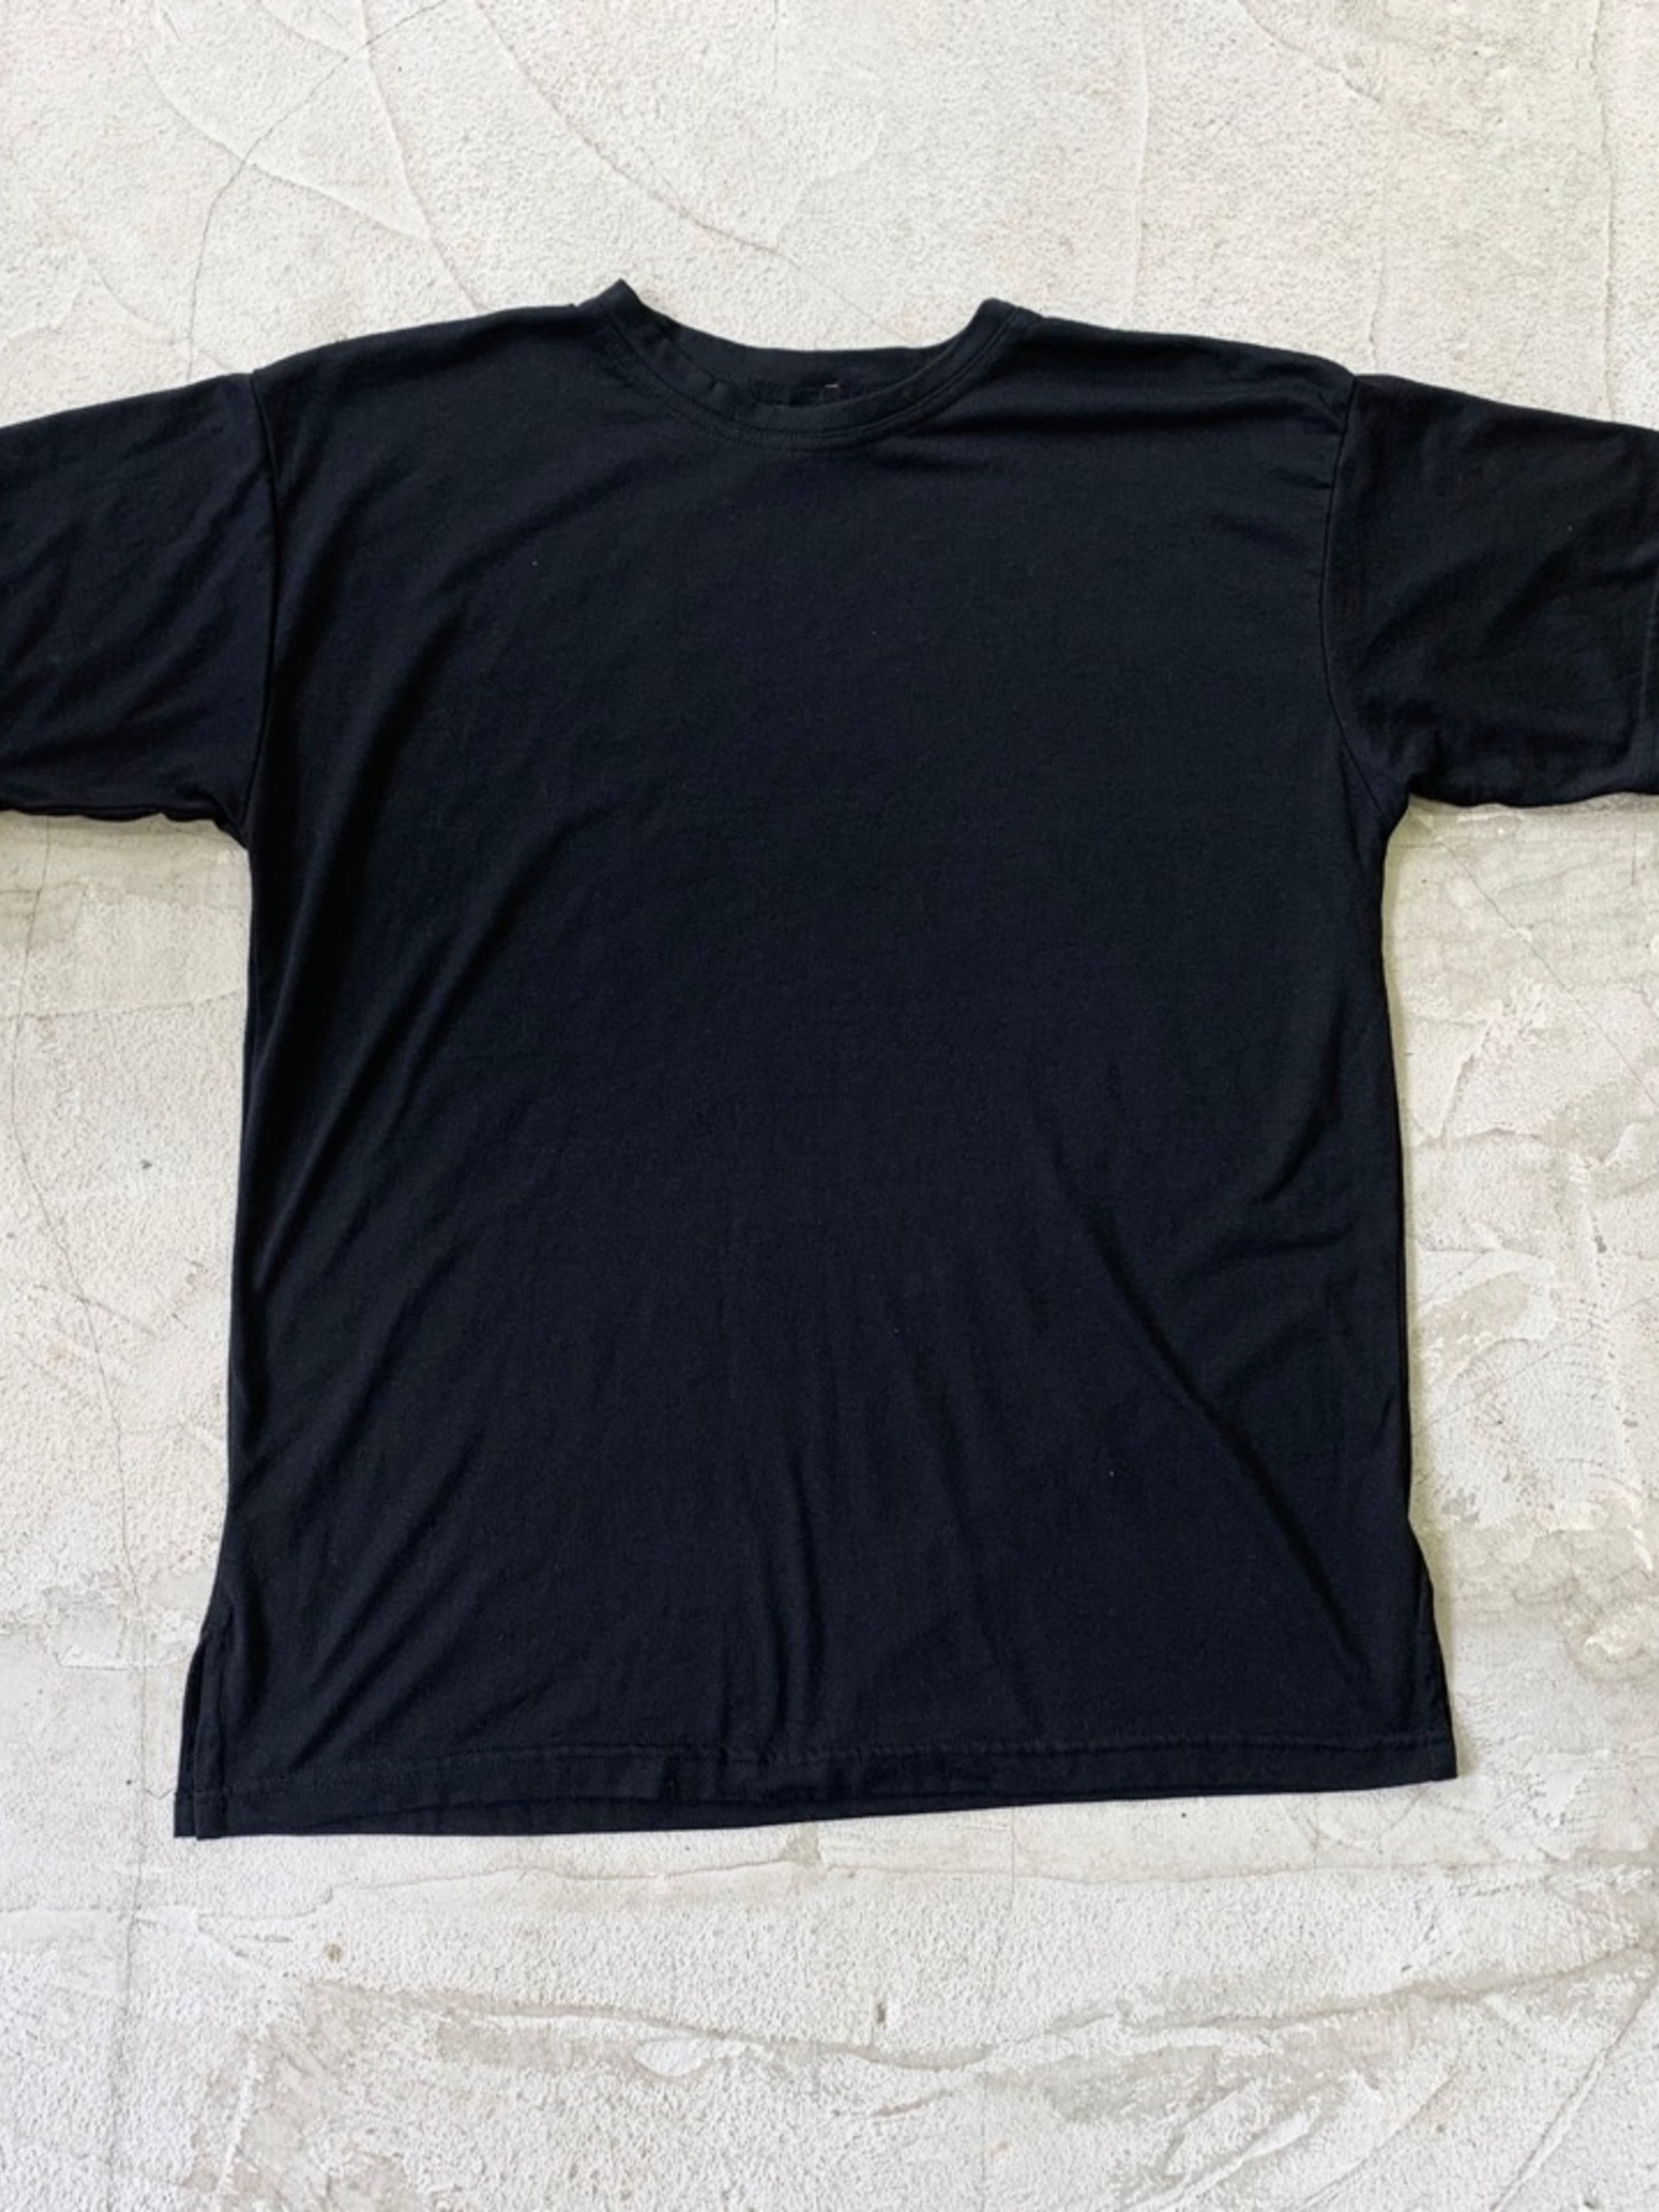 1980's〜 Dead stock over size t-shirt Black color Made in USA